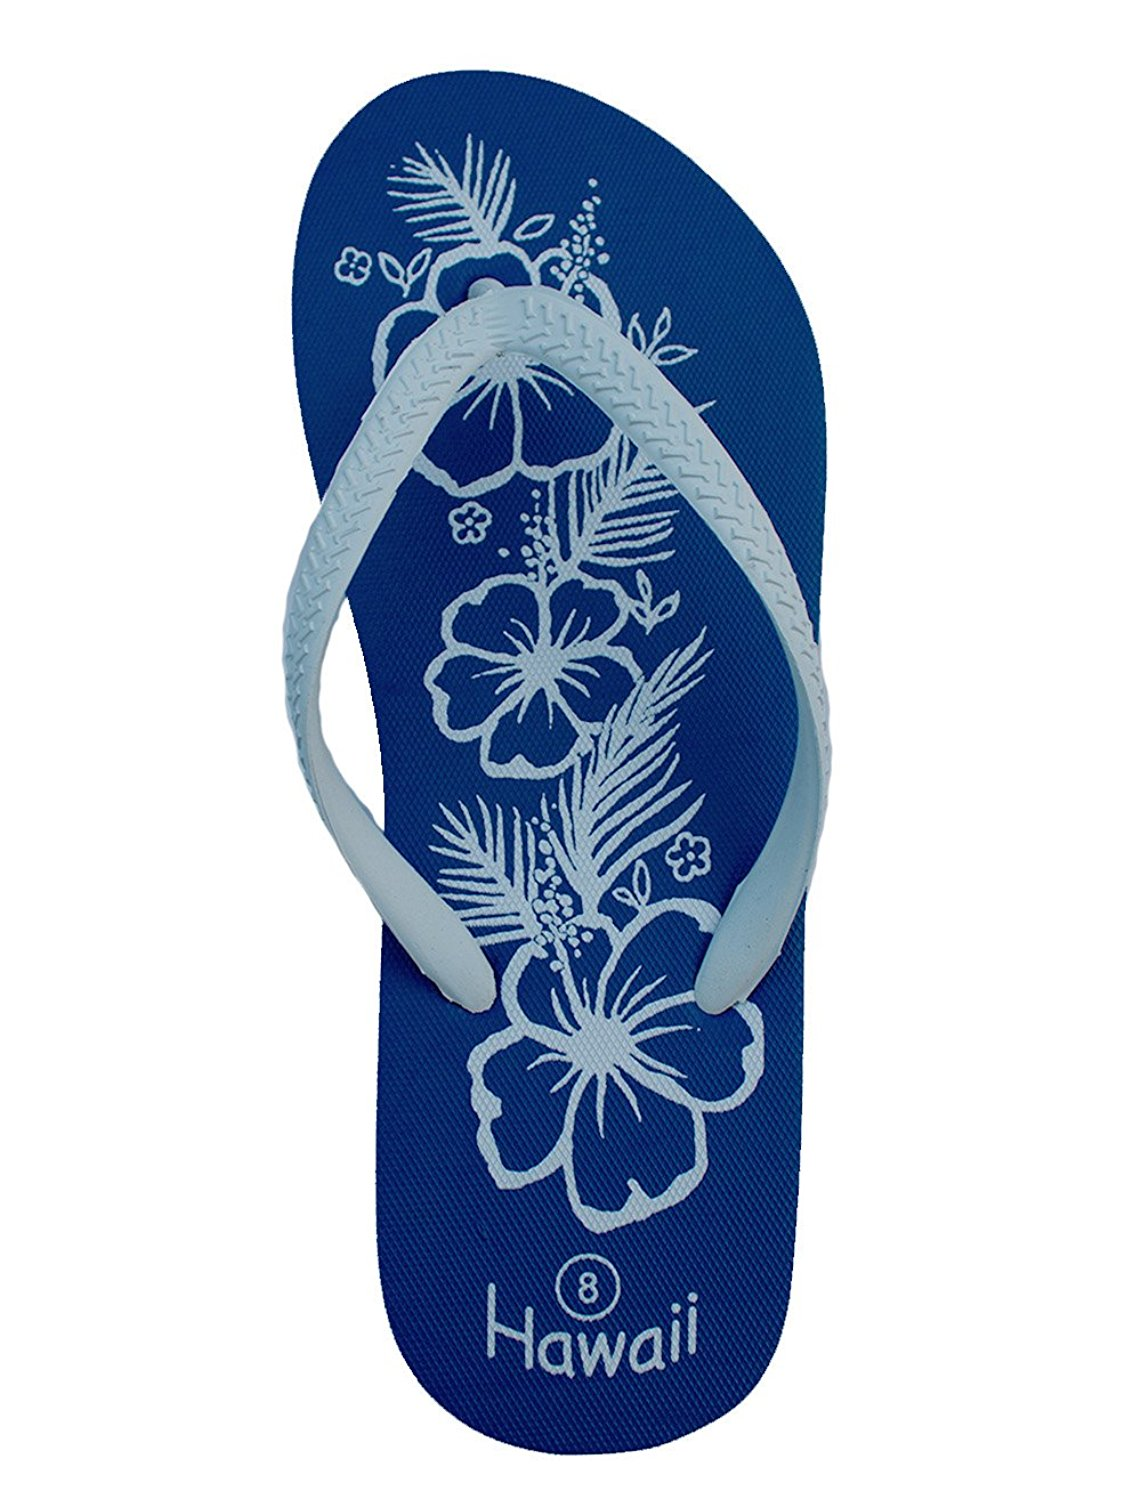 db48ebcc1 Get Quotations · Imperial Sandals Hawaii Women and Girls Royal Blue Hawaii  Slipper Sandals Flip Flops